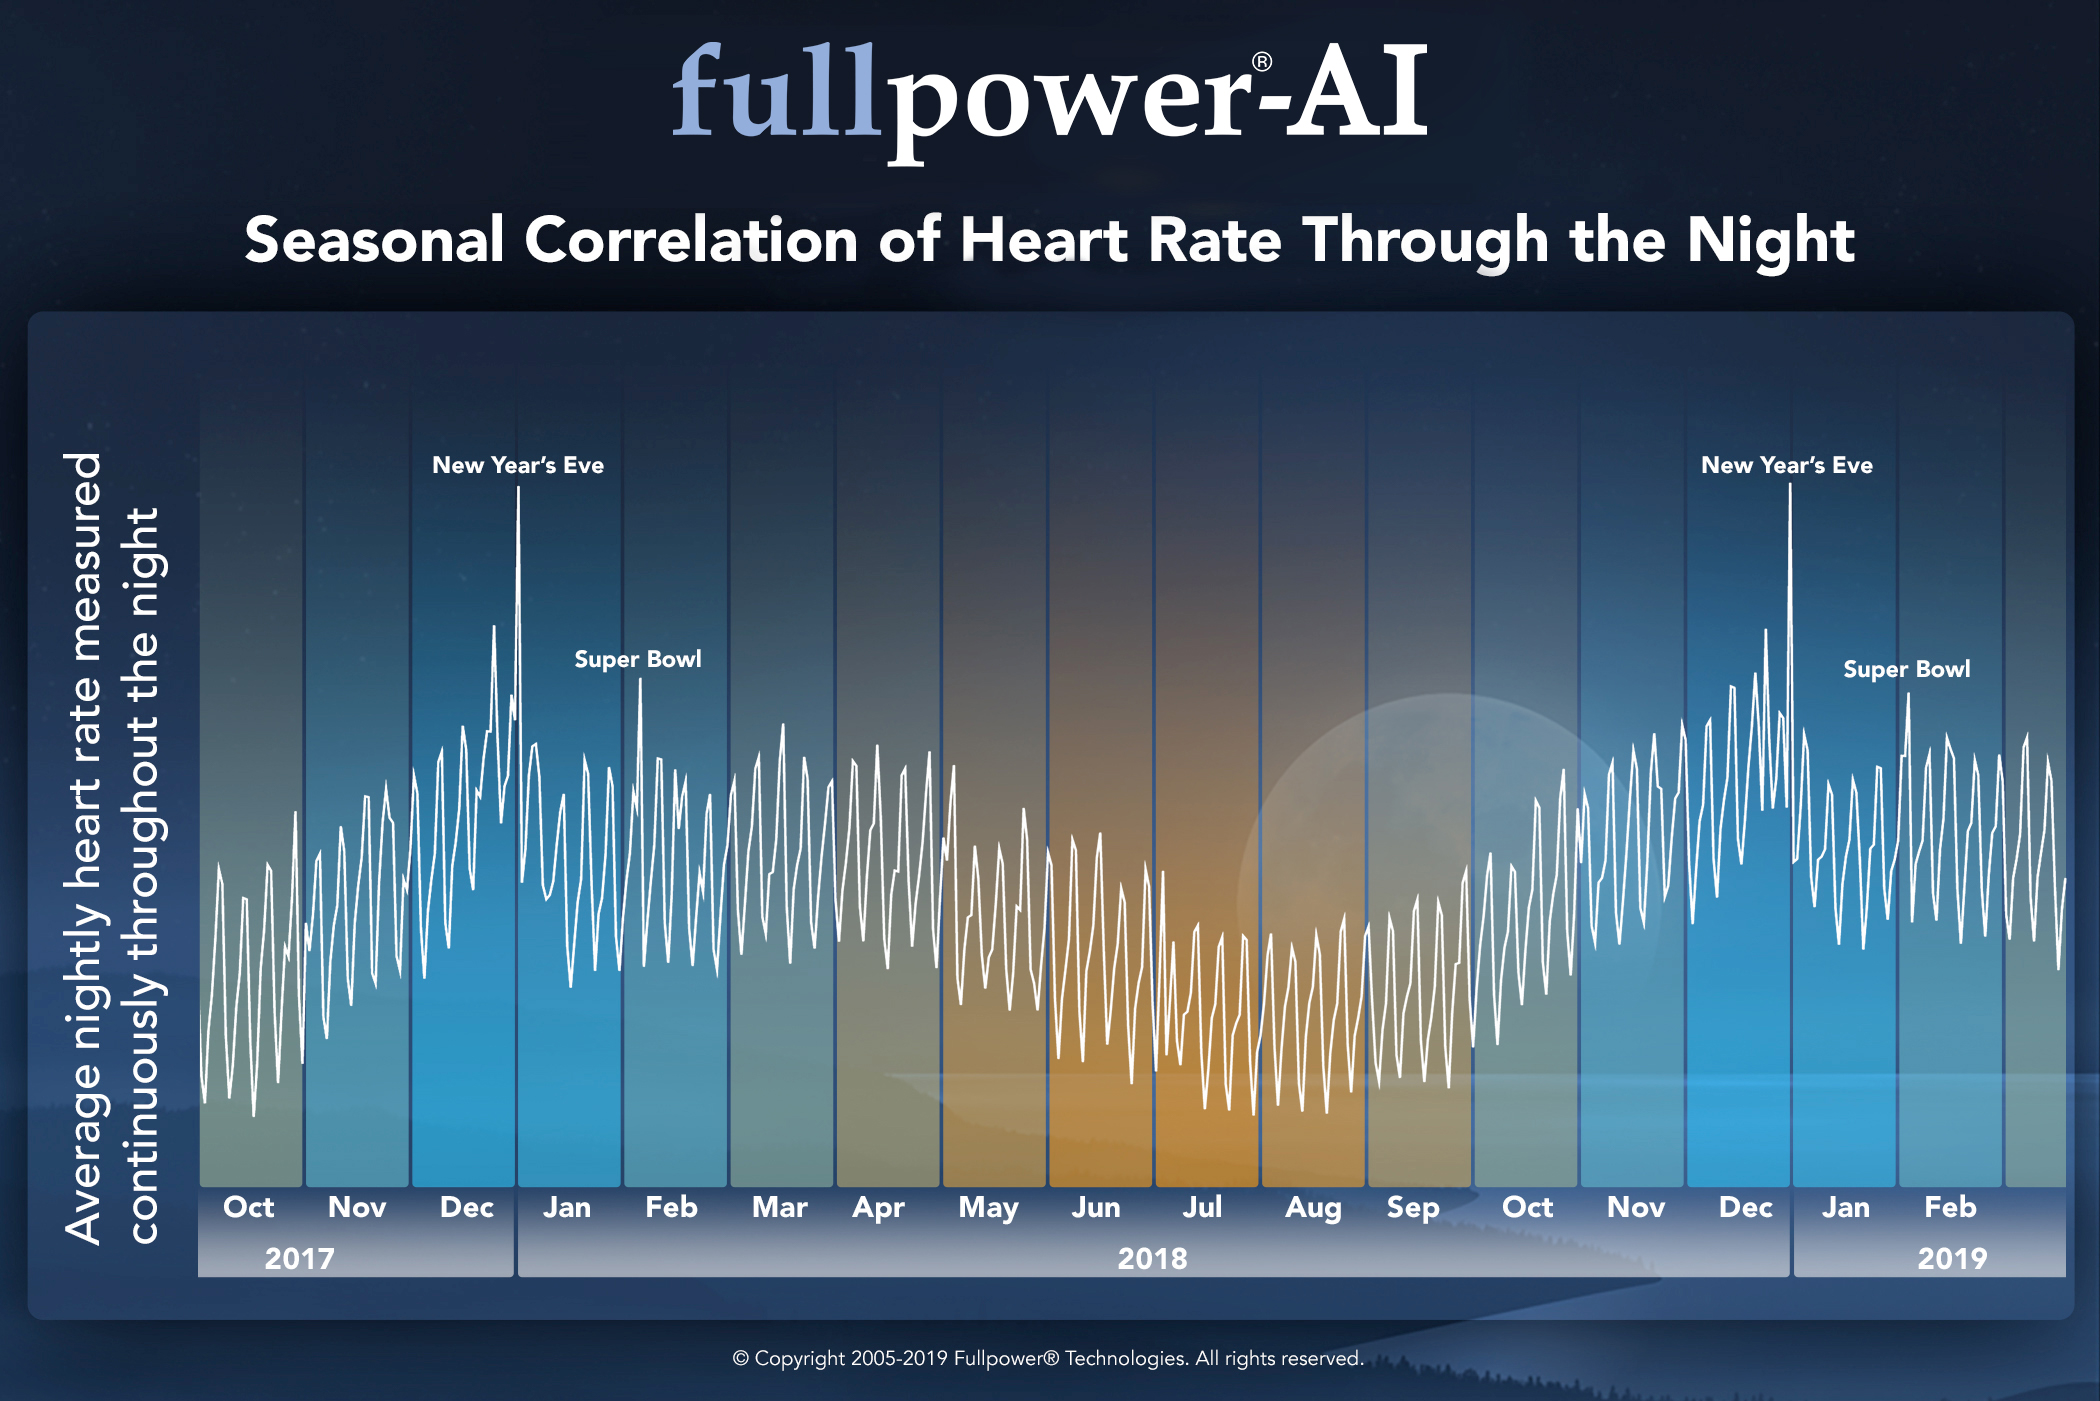 Seasonal Correlation of Heart Rate Through the Night